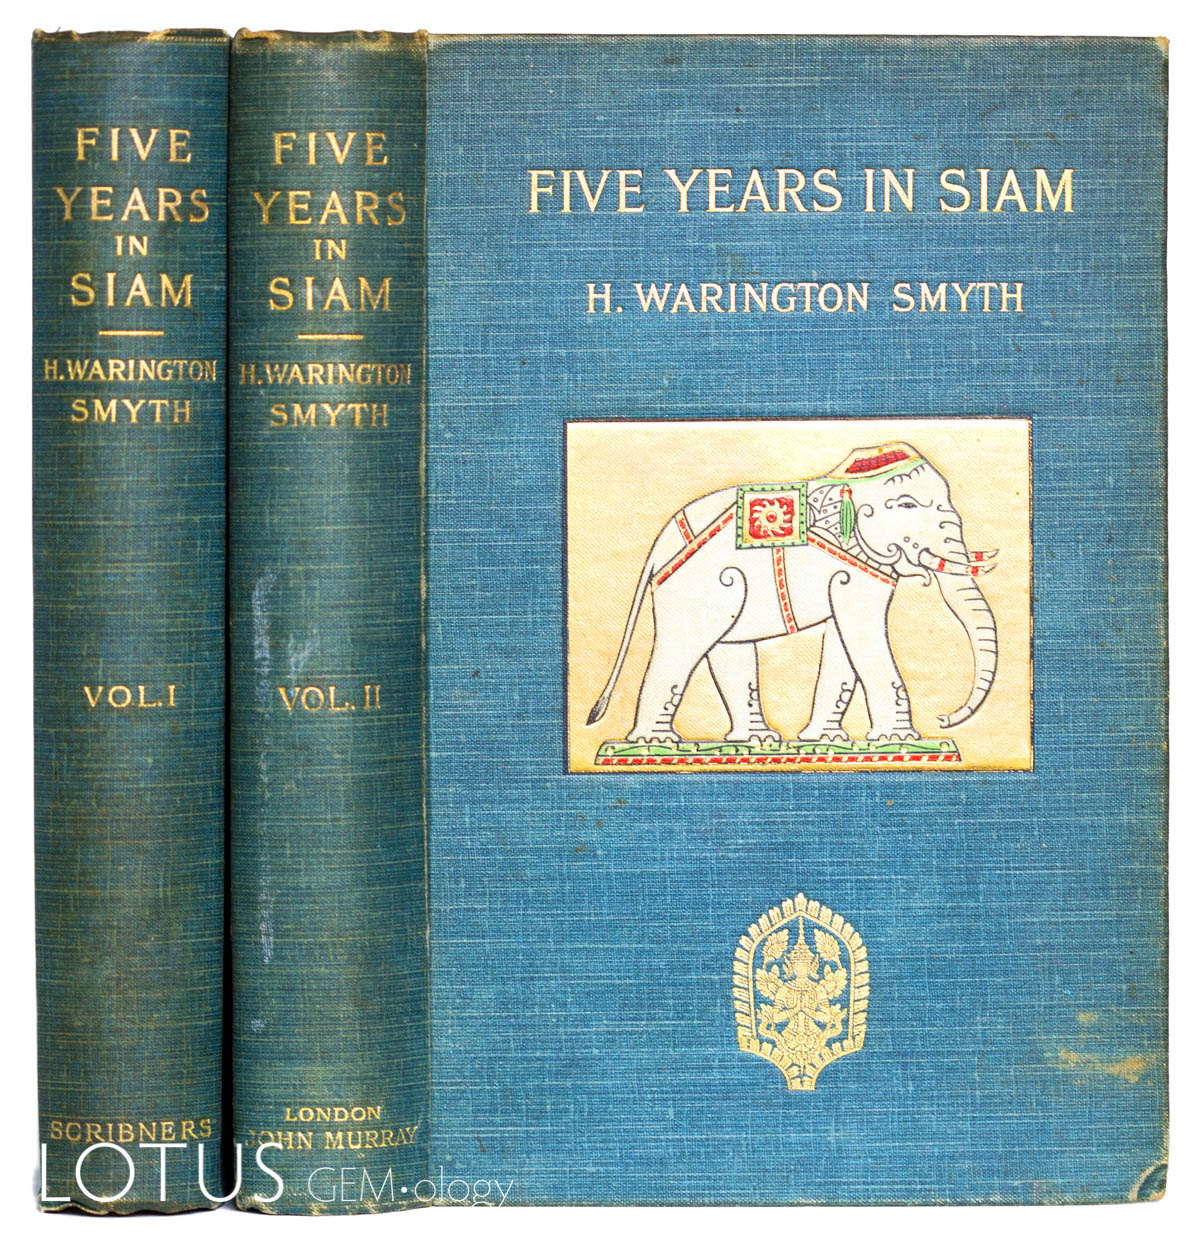 The finest 19th century resource on ruby and sapphire mining at Chanthaburi and Trat (Thailand) and Pailin (Cambodia) is H. Warington Smyth's Five Years in Siam (1898). It is highly sought after for its many plates, maps and decorative cover. Click on the photo for a larger image.